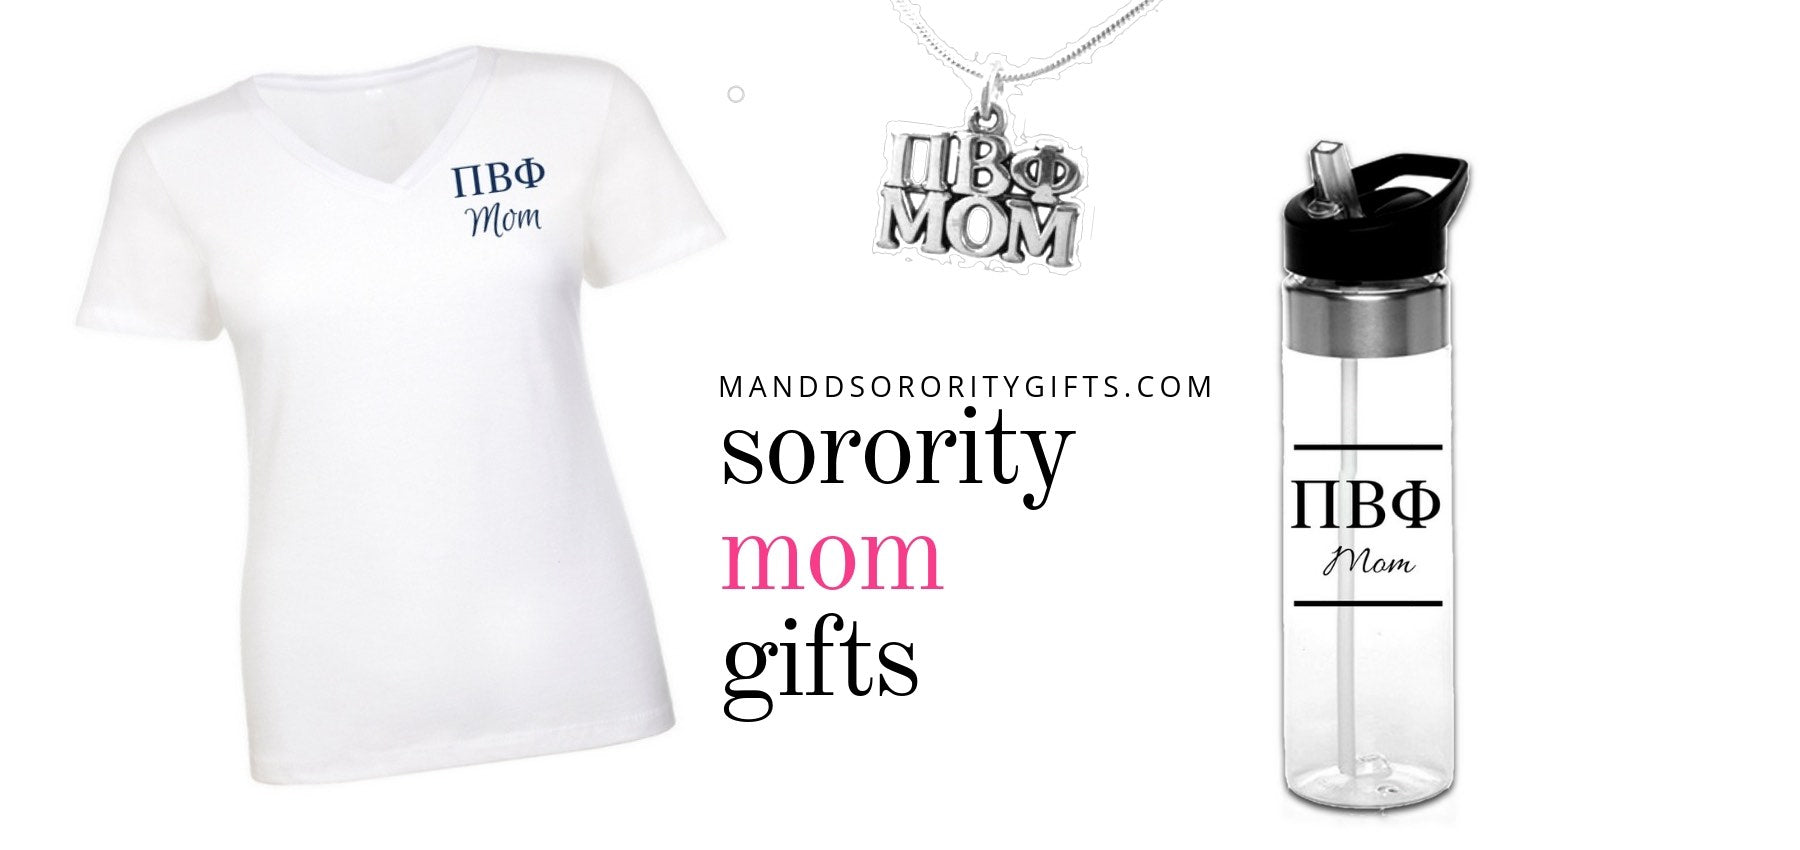 Pi Beta Phi Mom Gifts I 12 Reasons Moms Are the Best